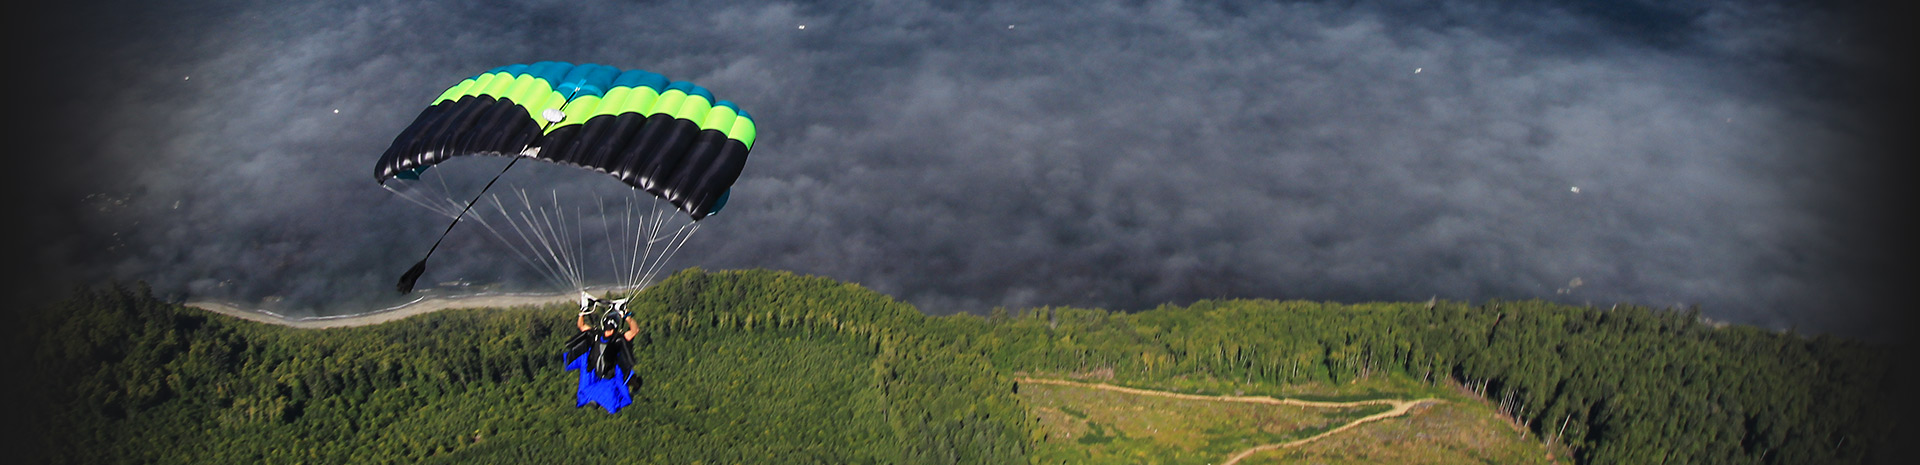 Squirrel Wingsuits   Wingsuit Base Jumping and Skydiving Equipment